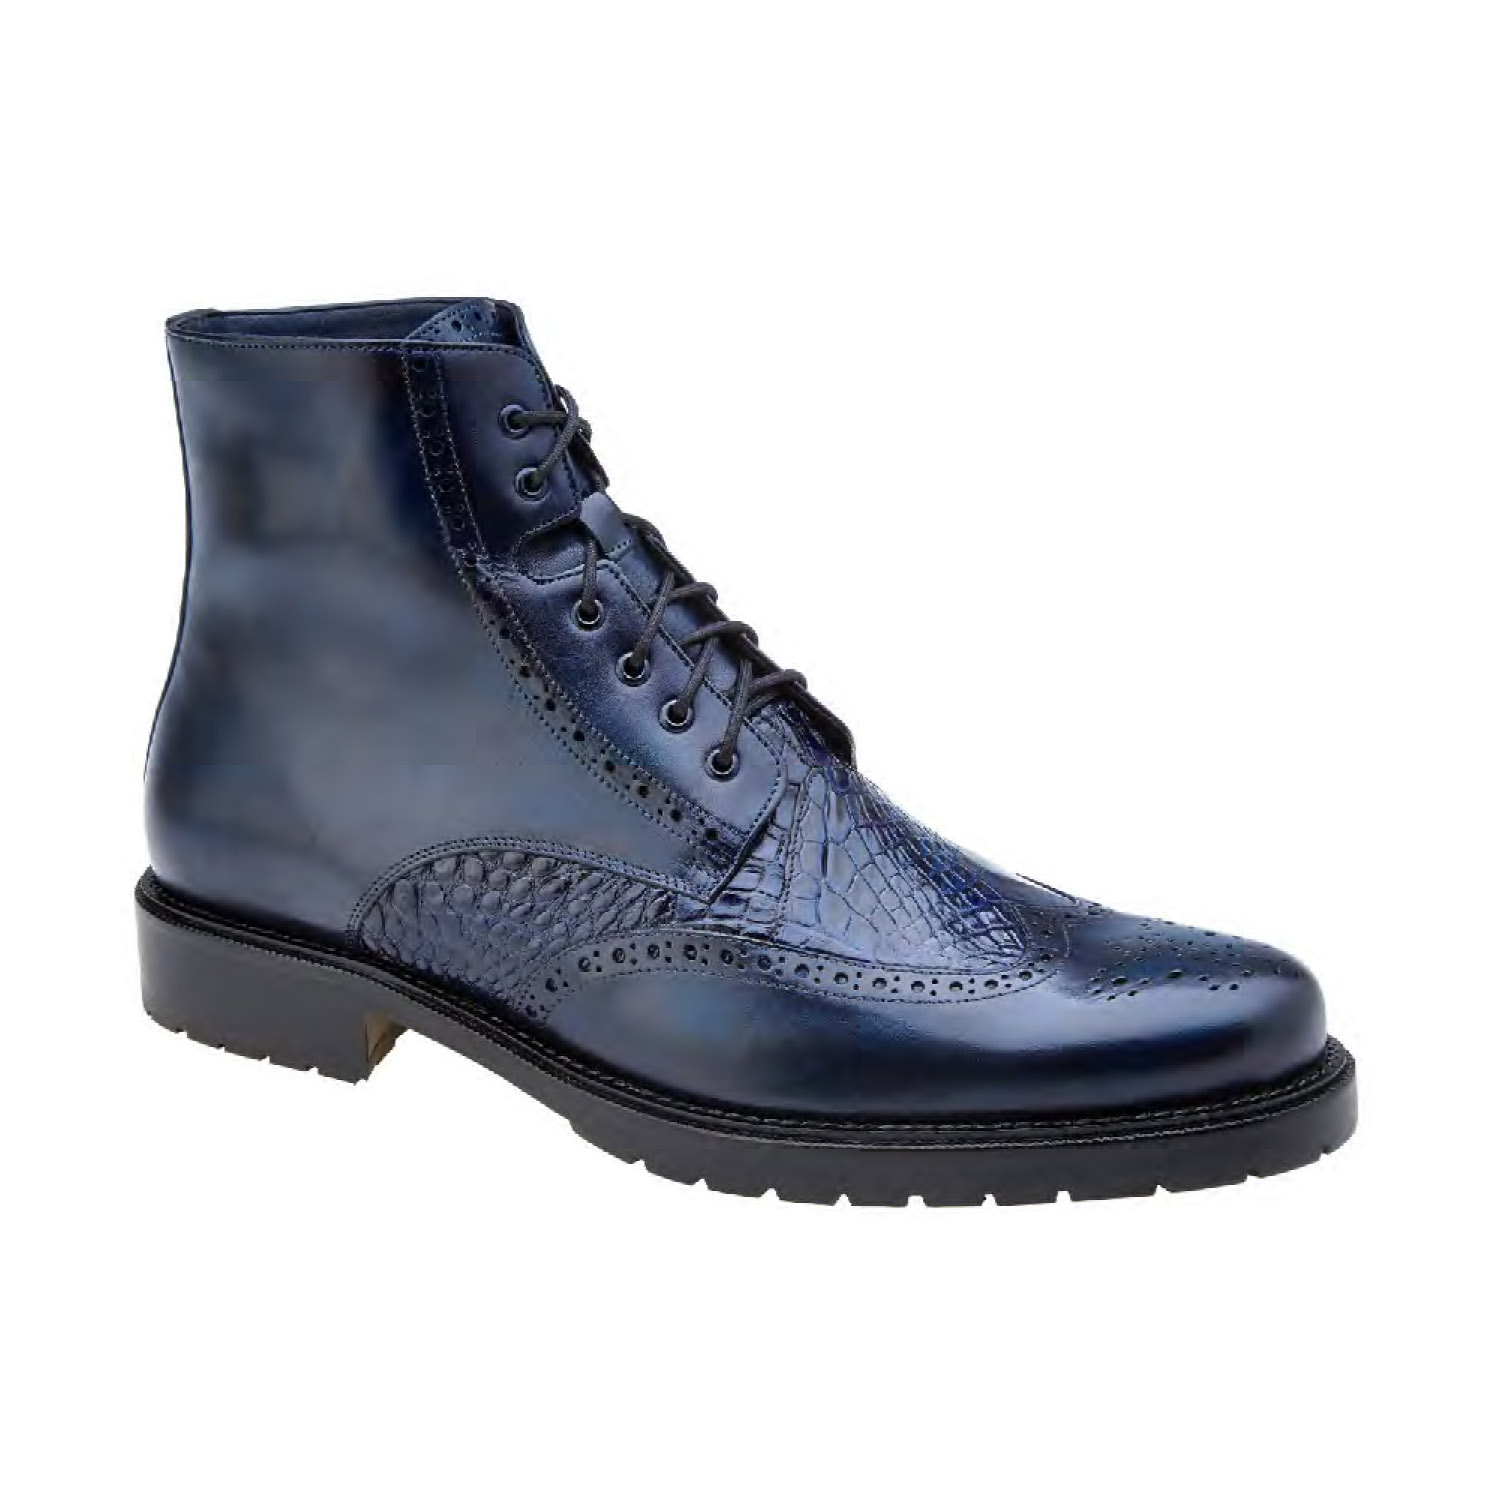 Belvedere Vito Genuine Alligator Italian Leather-Navy